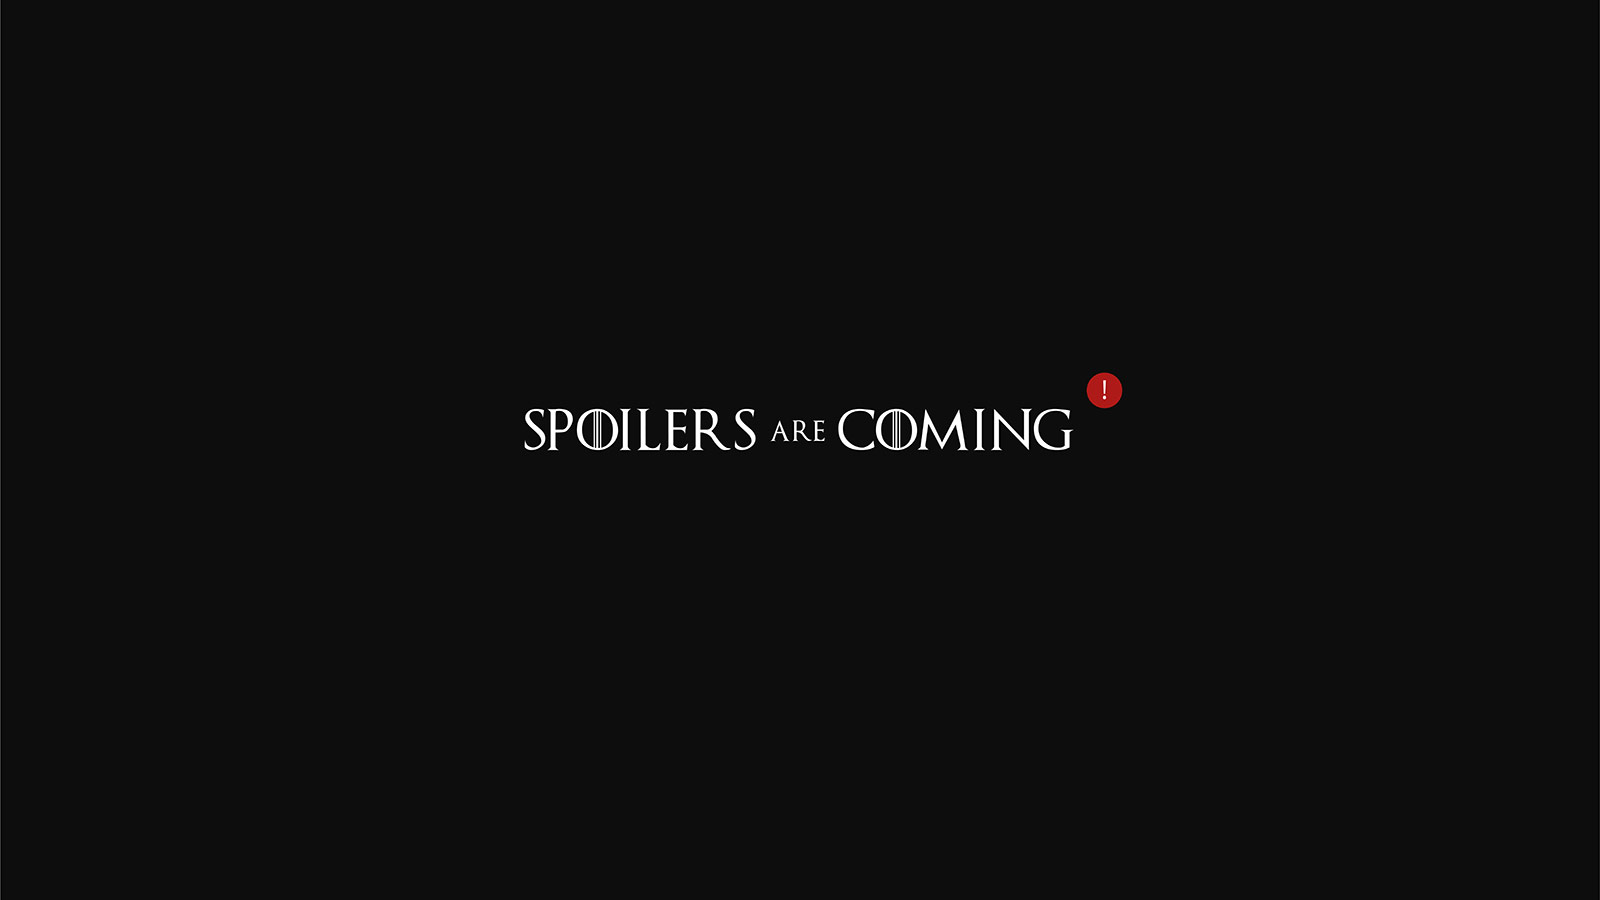 Game of Thrones: How to avoid those soul-destroying spoilers